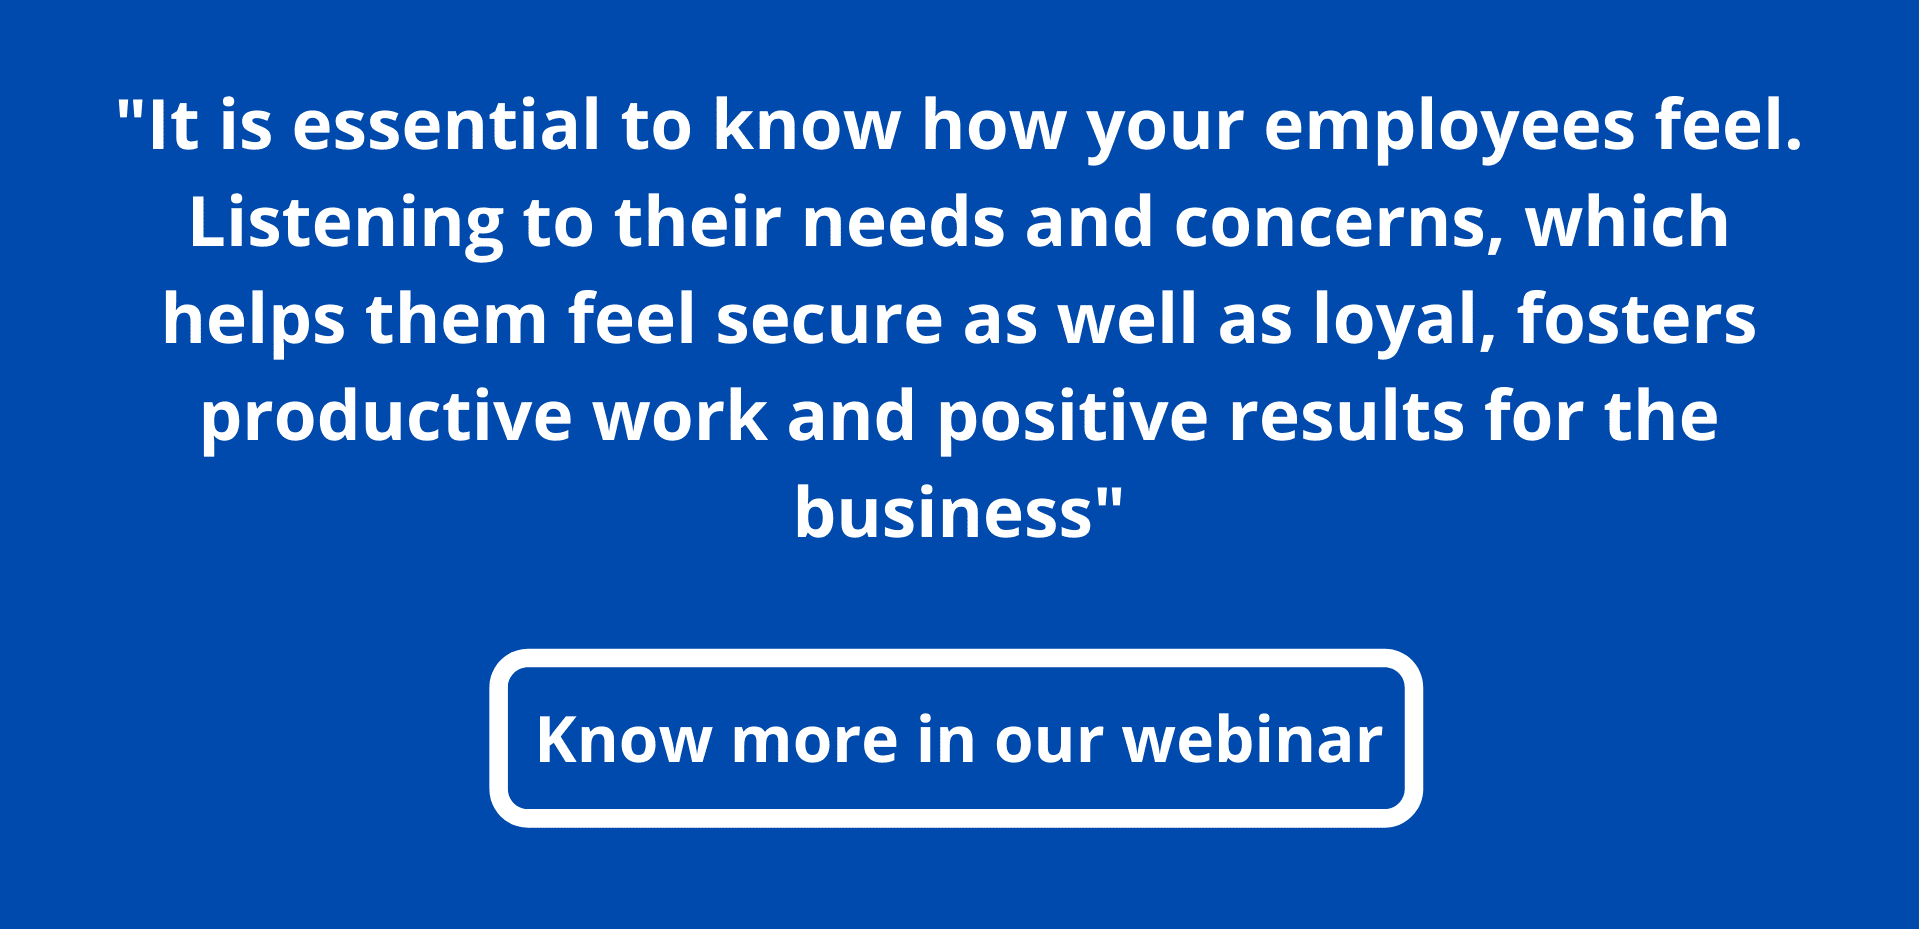 Are your employees prepared for the new normal?